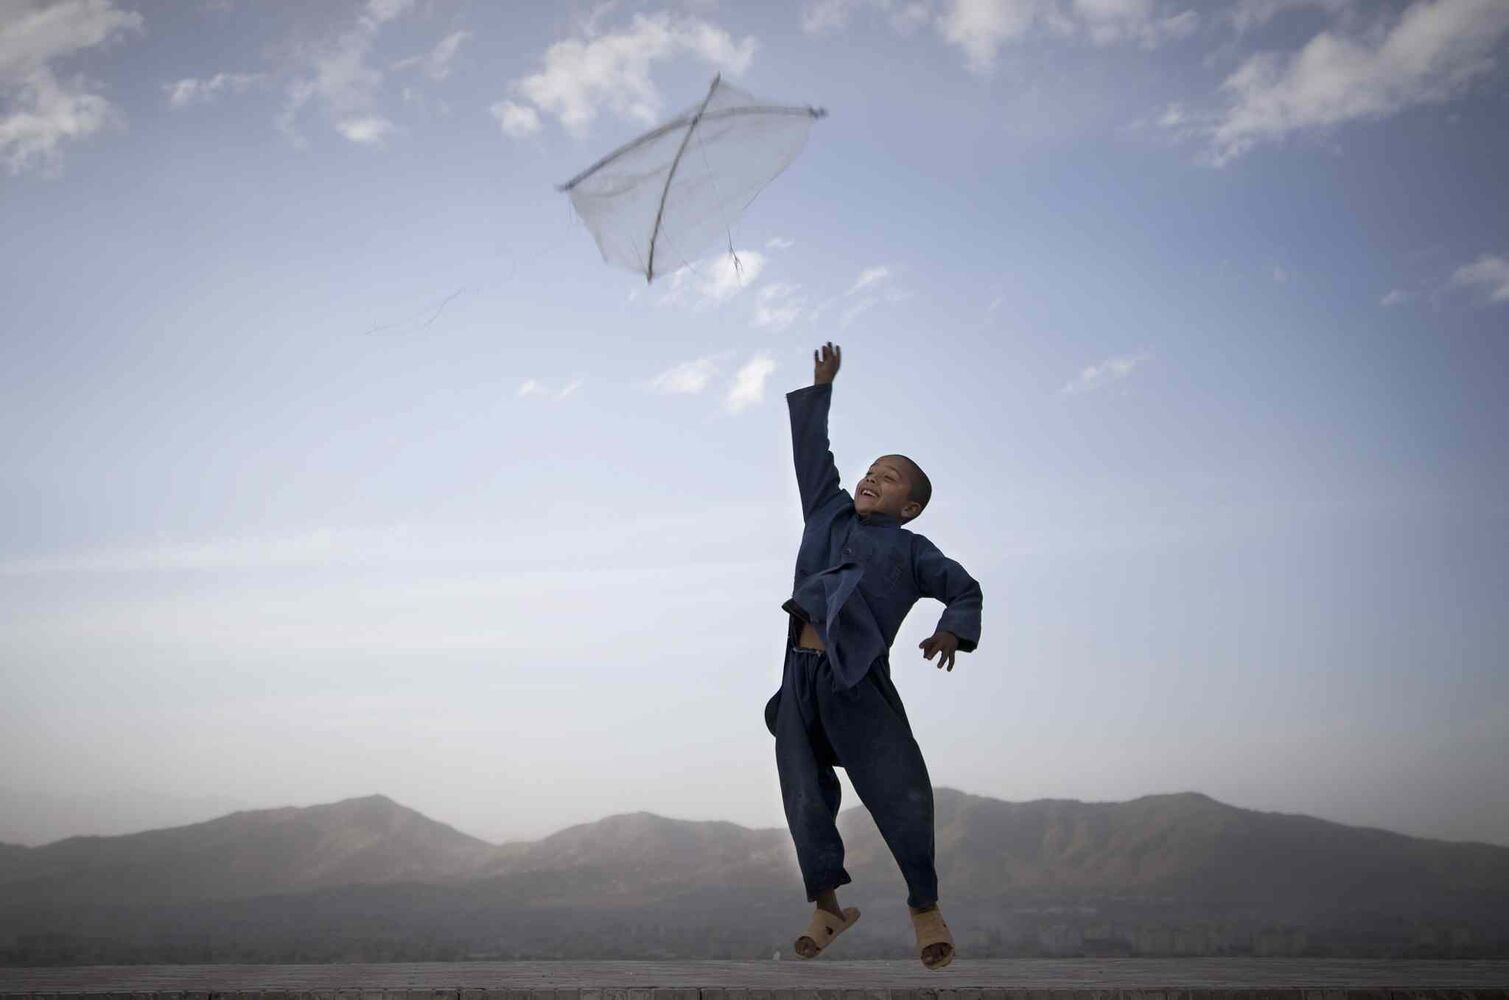 May 13, 2013: An Afghan boy flies his kite on a hill overlooking Kabul, Afghanistan. (Anja Niedringhaus / The Associated Press)